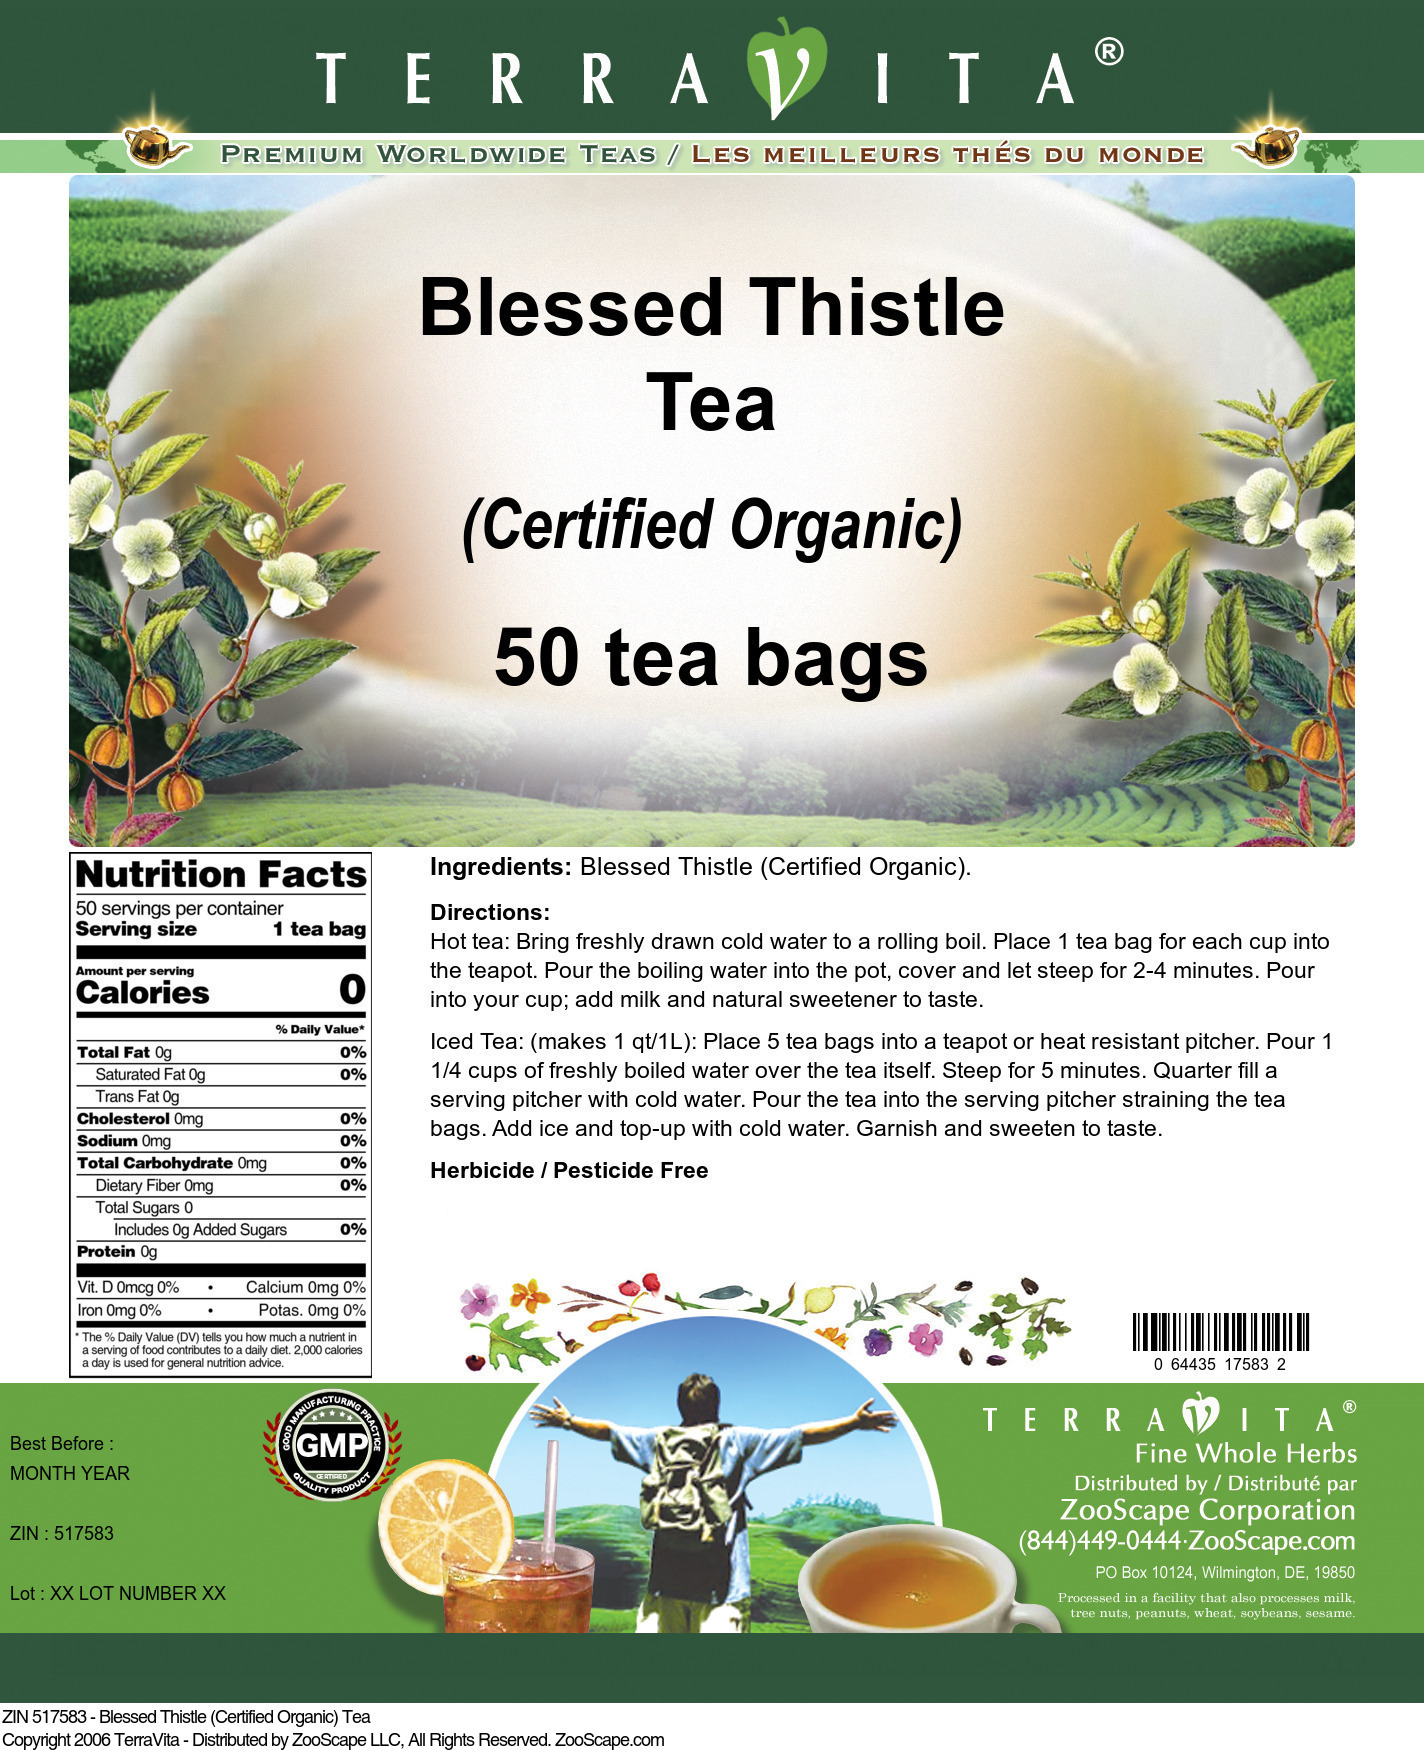 Blessed Thistle (Certified Organic) Tea